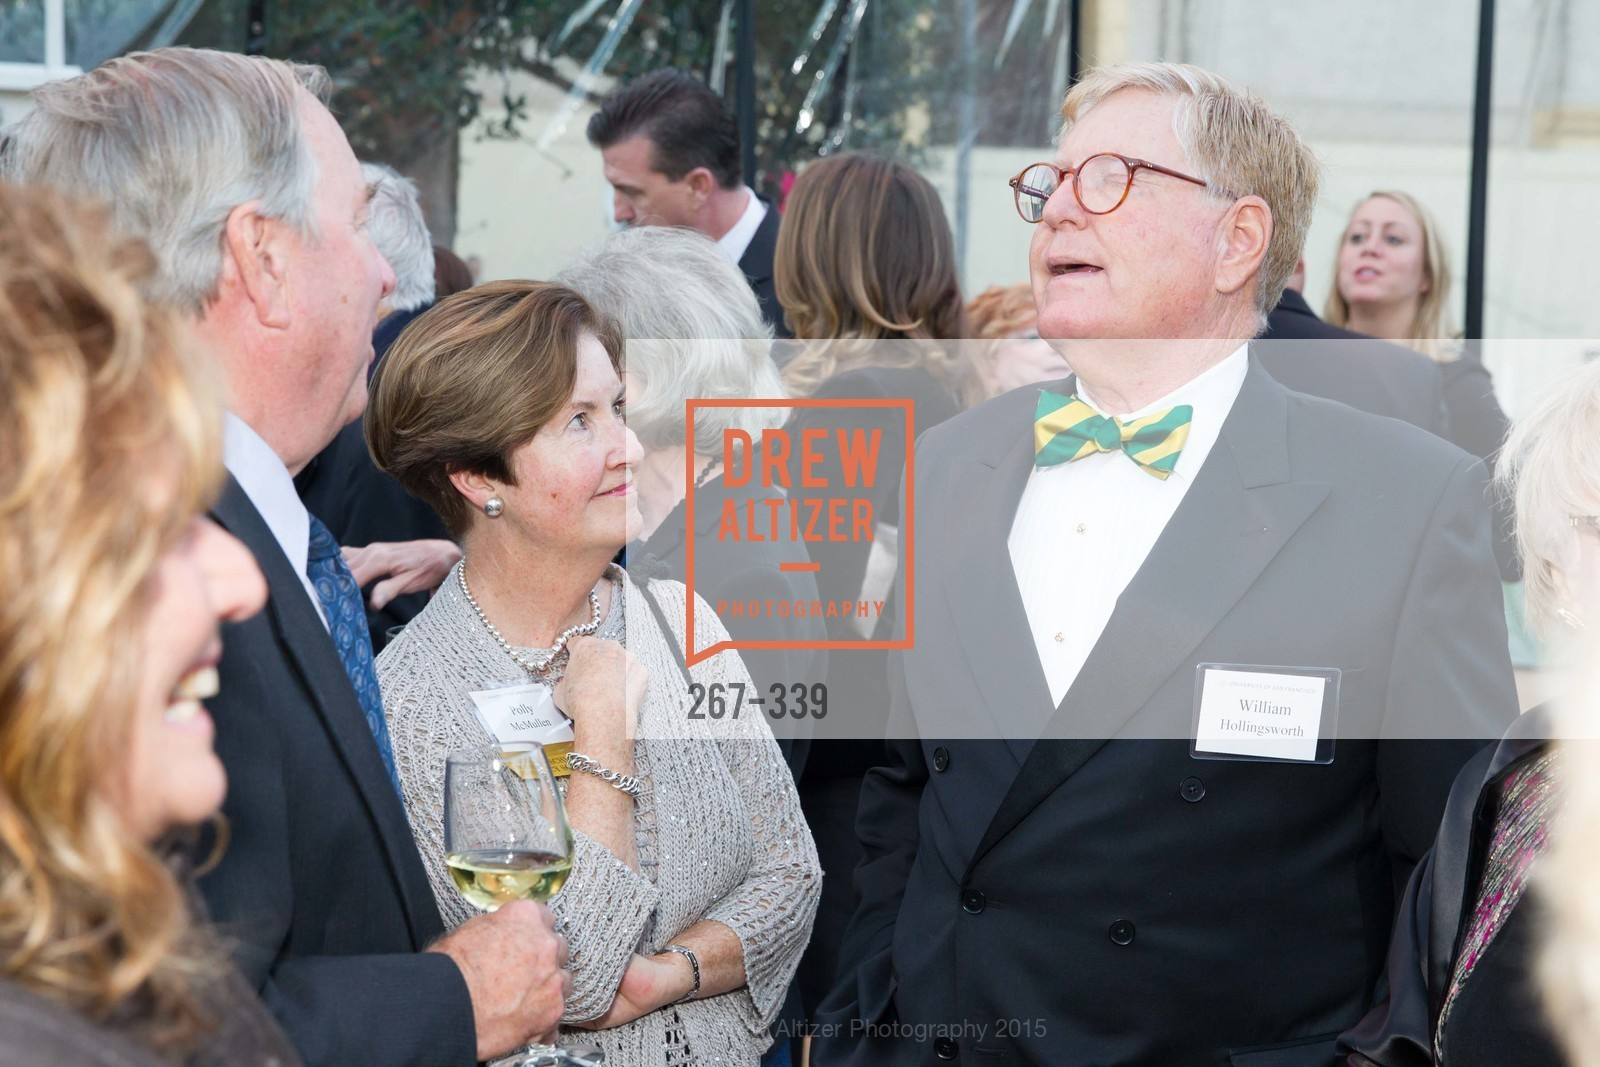 William Hollingsworth, University of San Francisco Alumni Awards Gala 2015, University of San Francisco, October 2nd, 2015,Drew Altizer, Drew Altizer Photography, full-service agency, private events, San Francisco photographer, photographer california